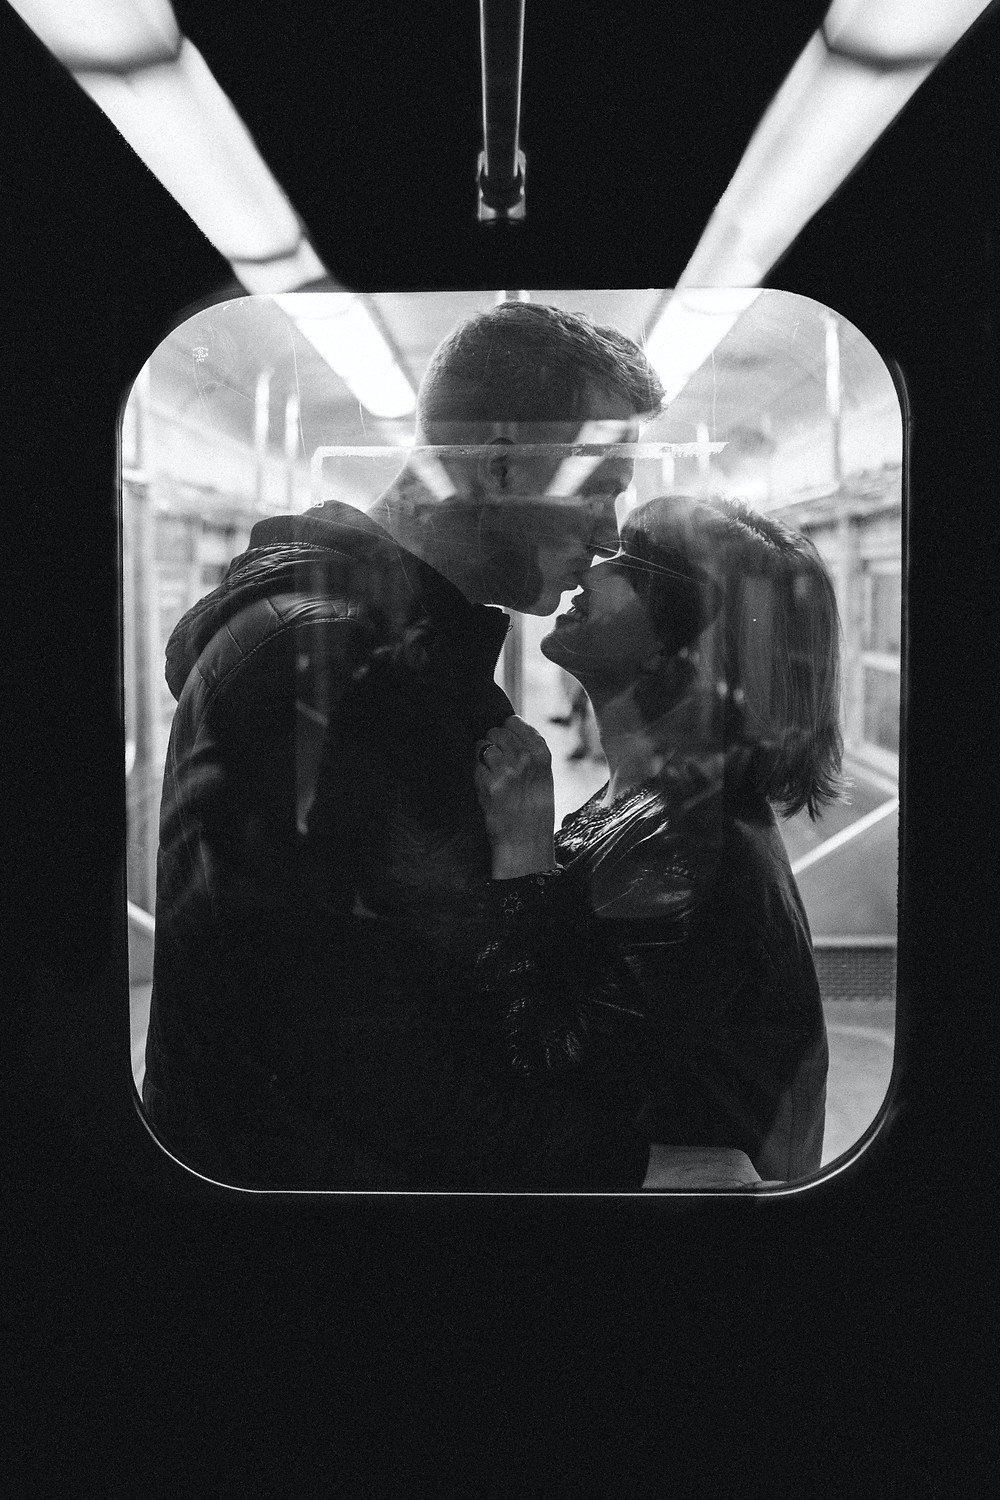 Black and white couple portrait through the window on the tube